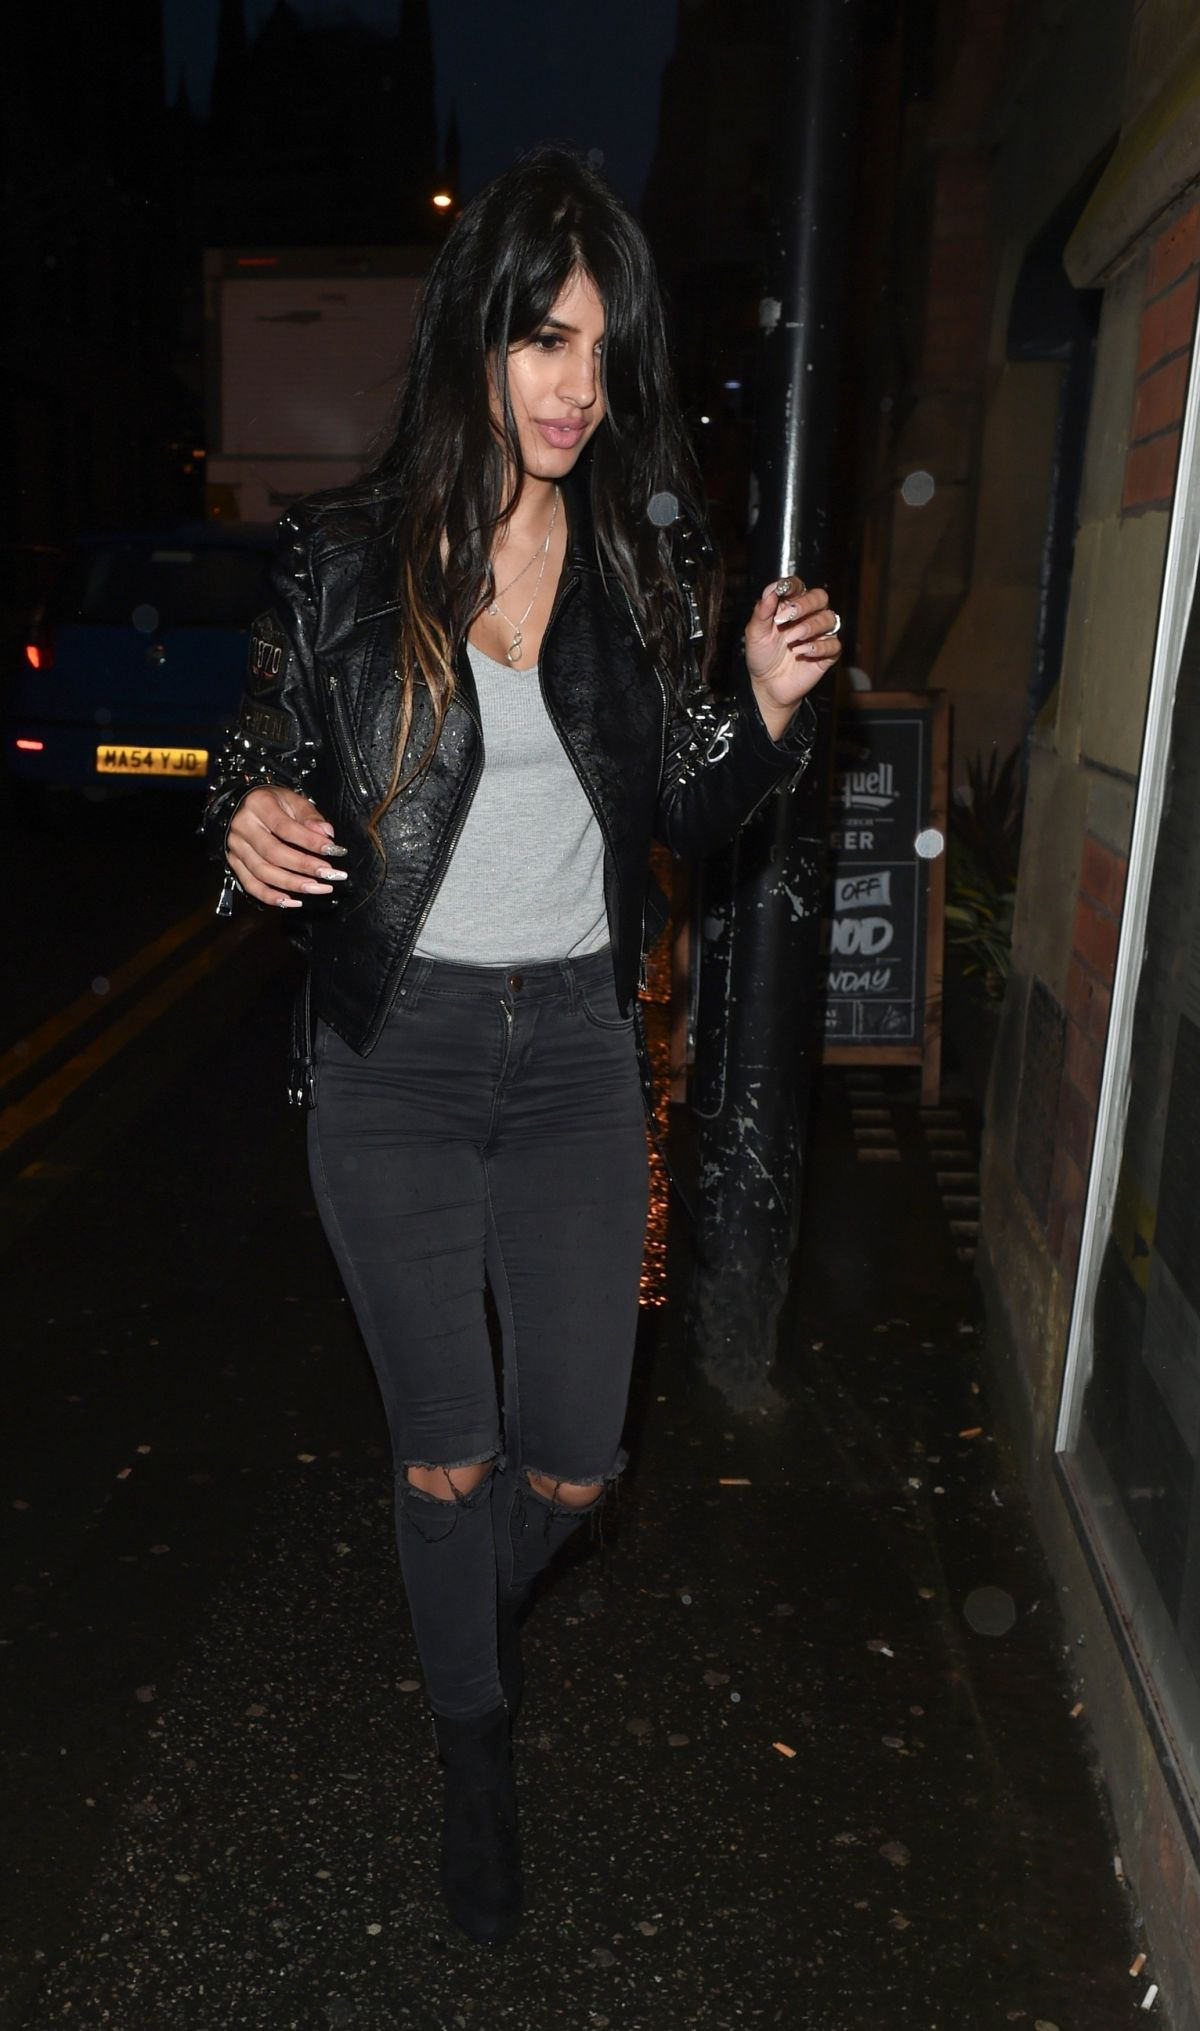 JASMIN WALIA at Smoke House Bar and Restaurant in Manchester 07/21/2017